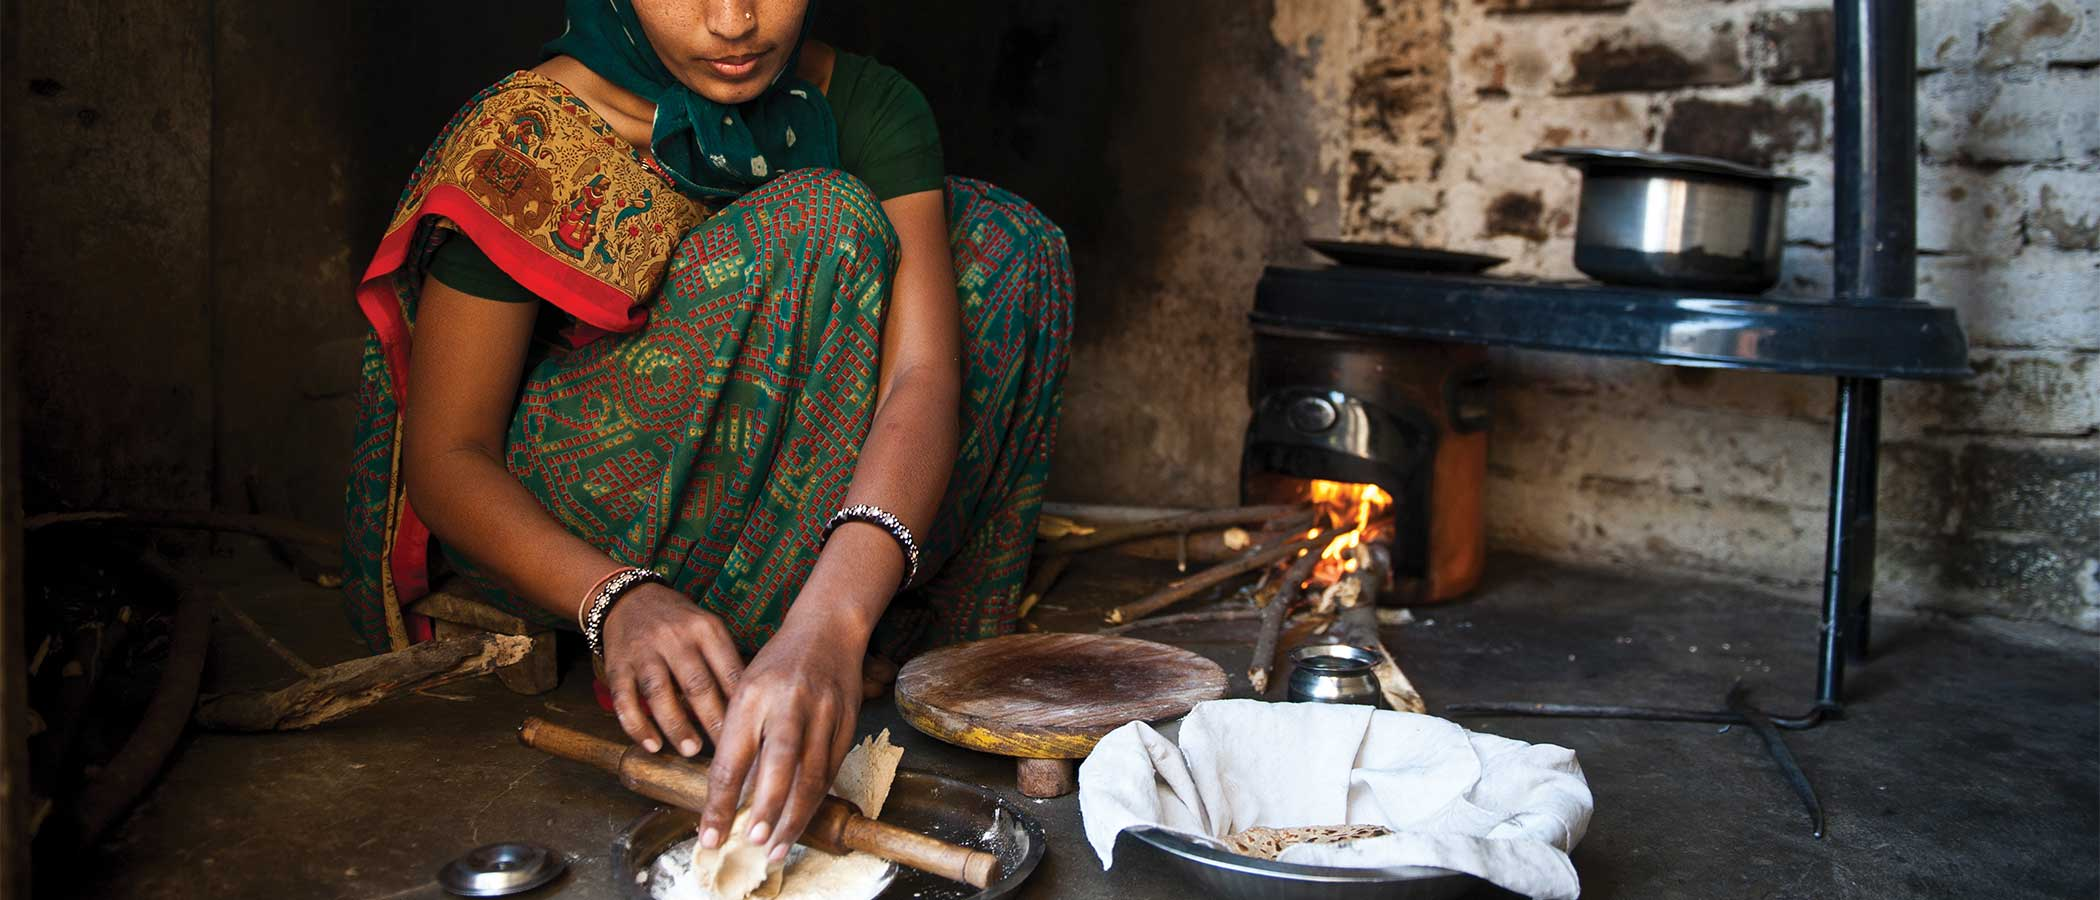 A woman prepares food on an improved cookstove in her home in the Indian state of Gujarat.